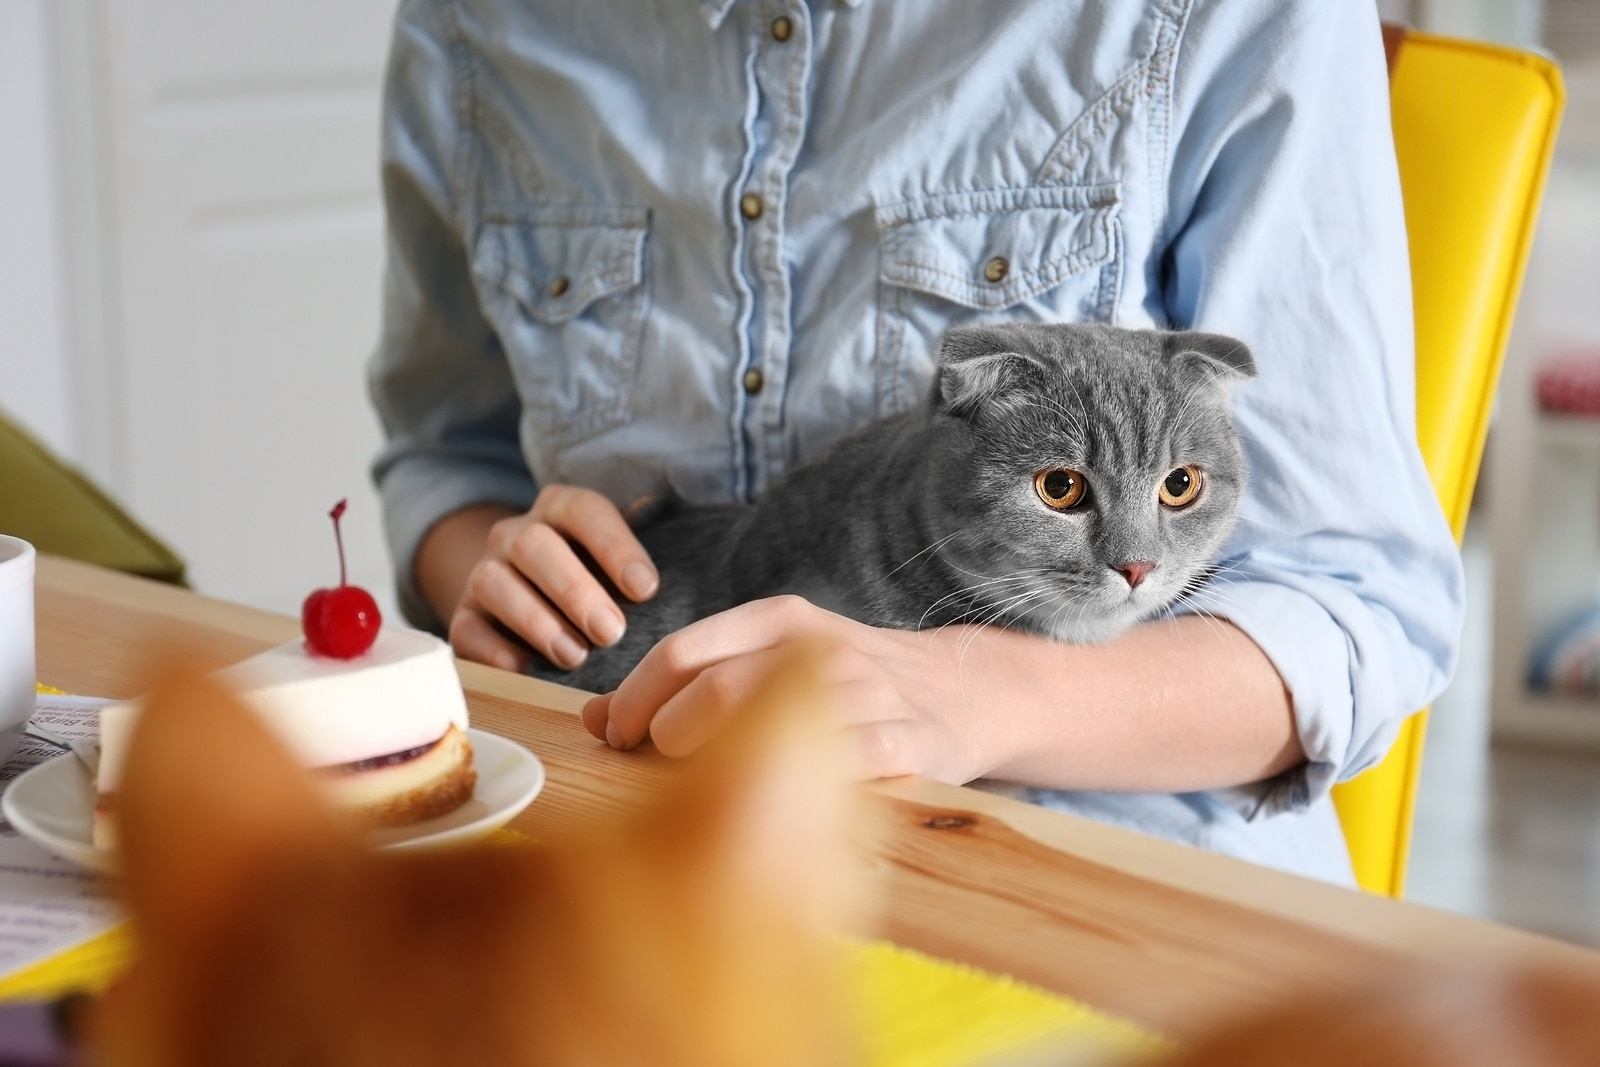 Gray cat sitting in woman's lap in a blue denim shirt sitting at a table with cheesecake on it.